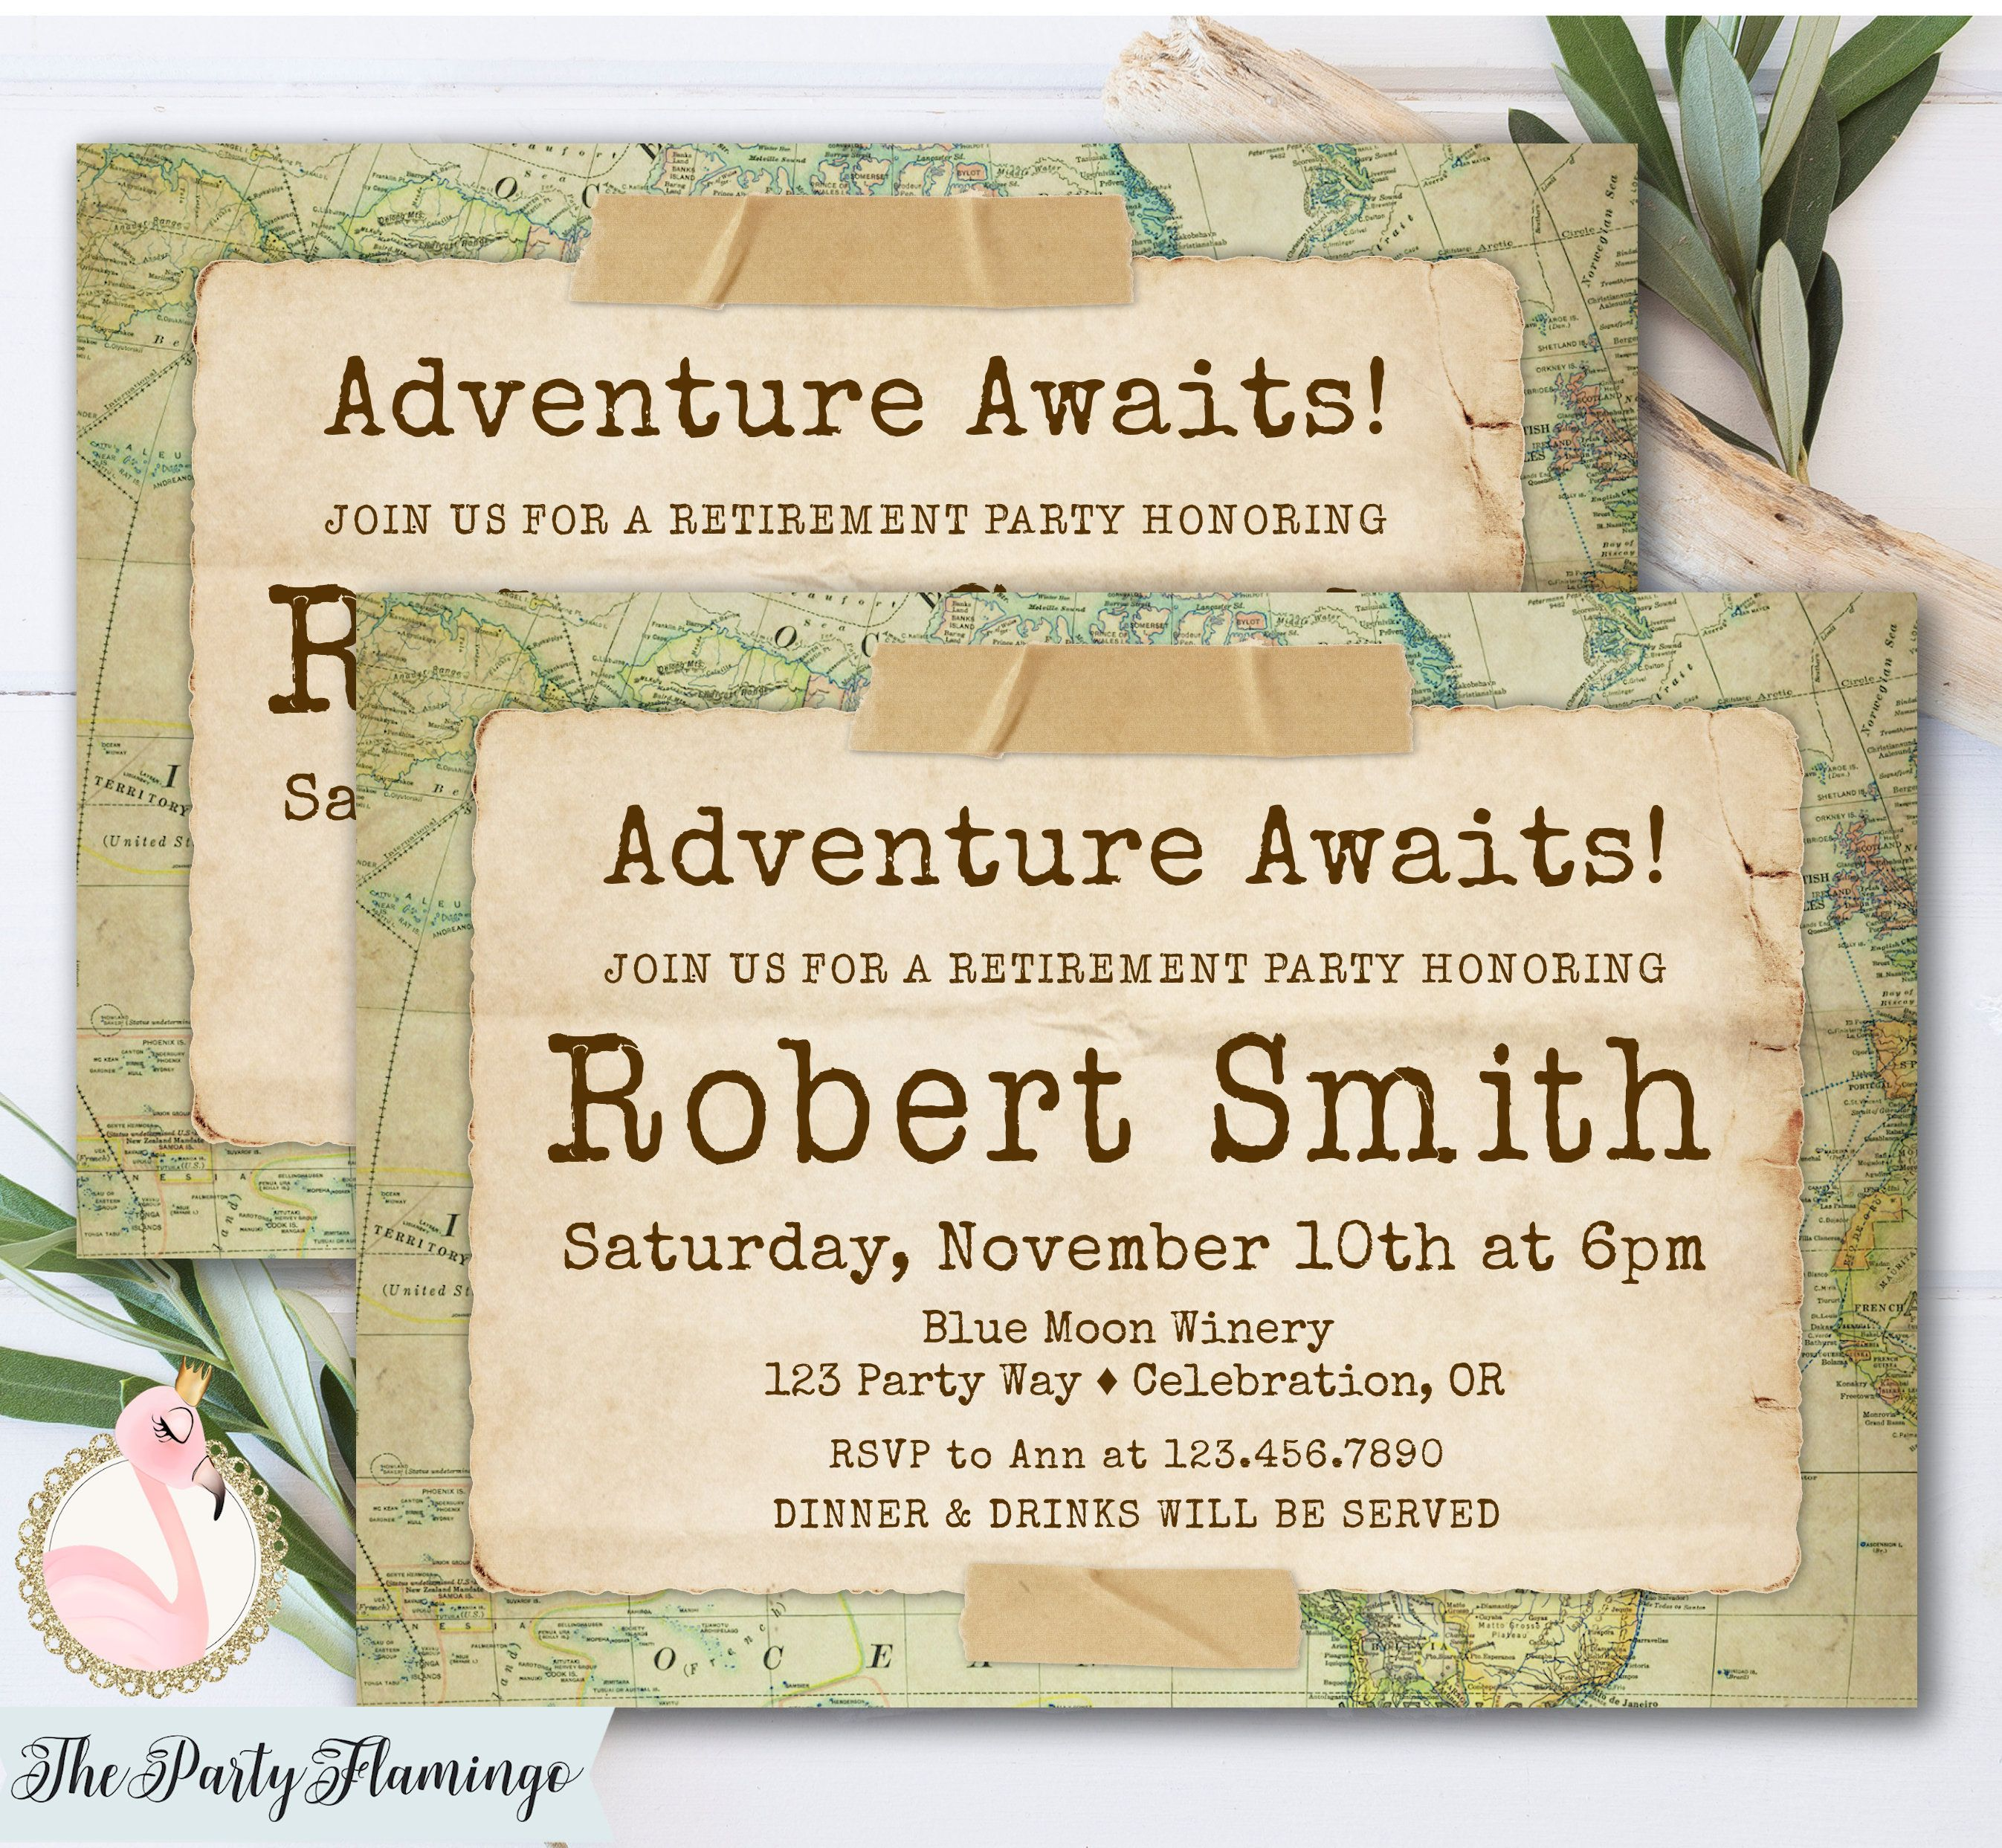 Travel retirement party invitations, adventure awaits ... on no map, art that is a map, can map, would map, tv map, nz map, get map, first map, bing map, future earth changes map, oh map, india map, personal systems map, find map, heart map, gw map, it's map, co map, wo map, ai map,